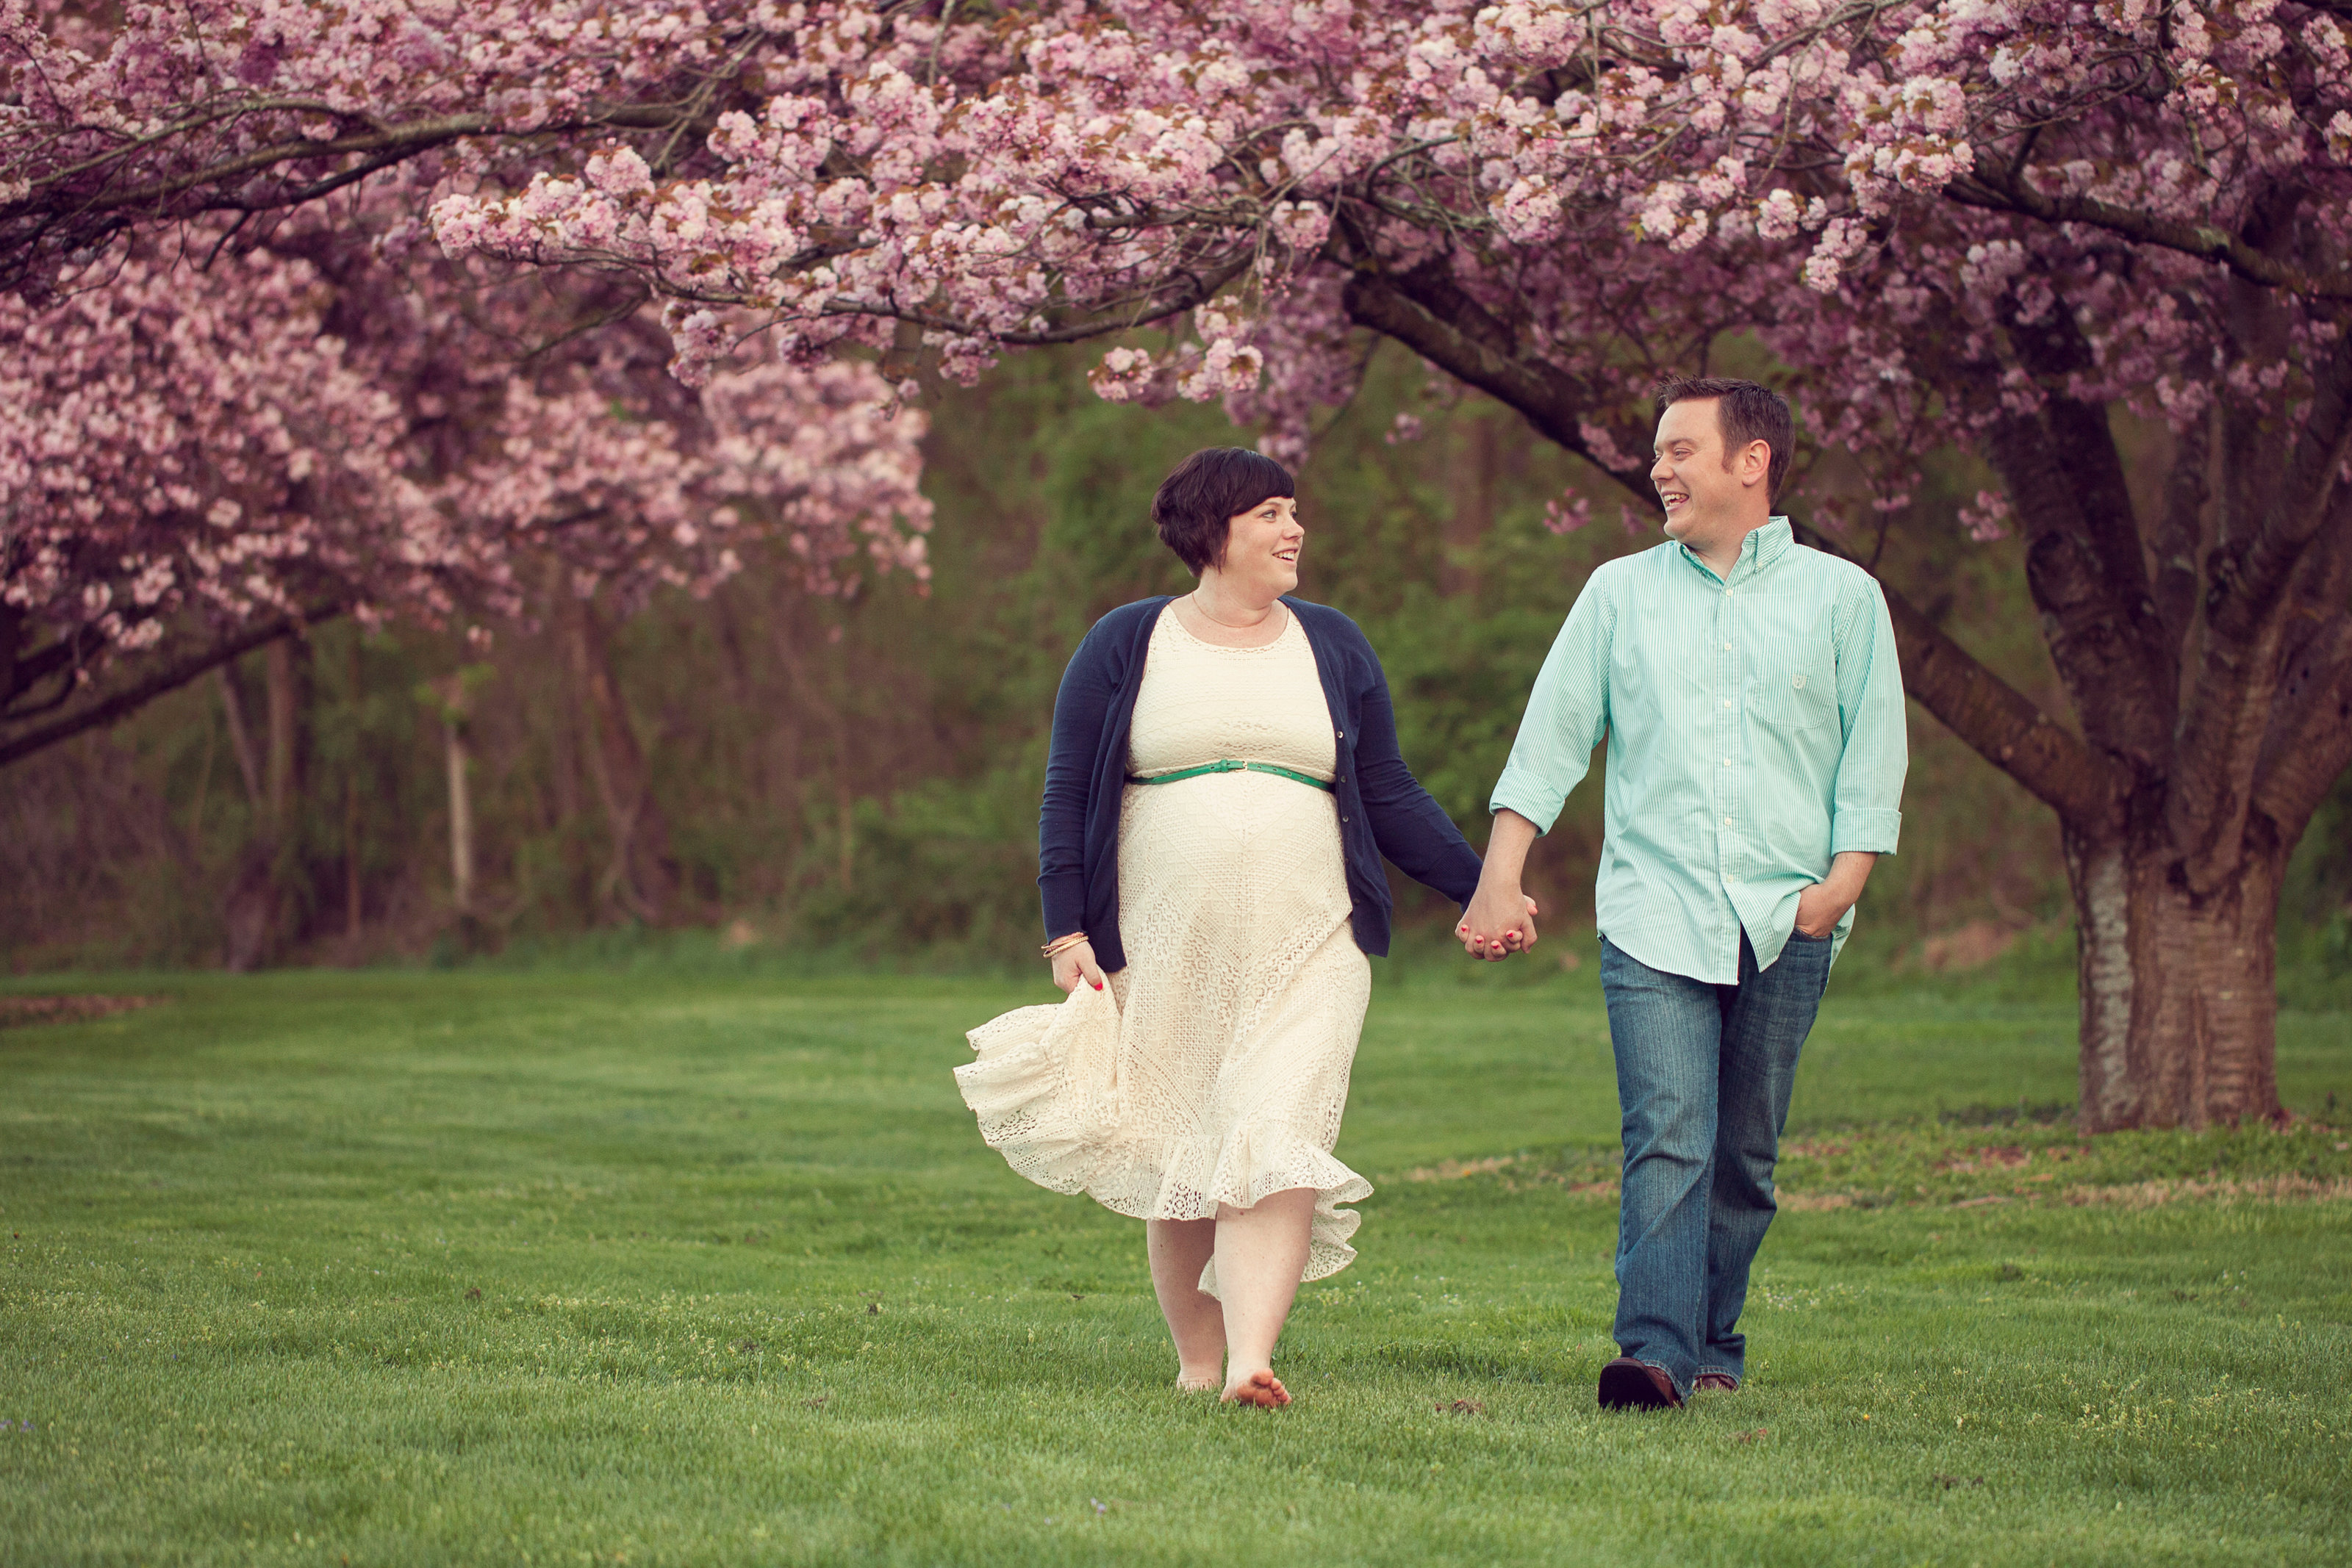 PA spring pregnancy walking pose photo with pink blossoms